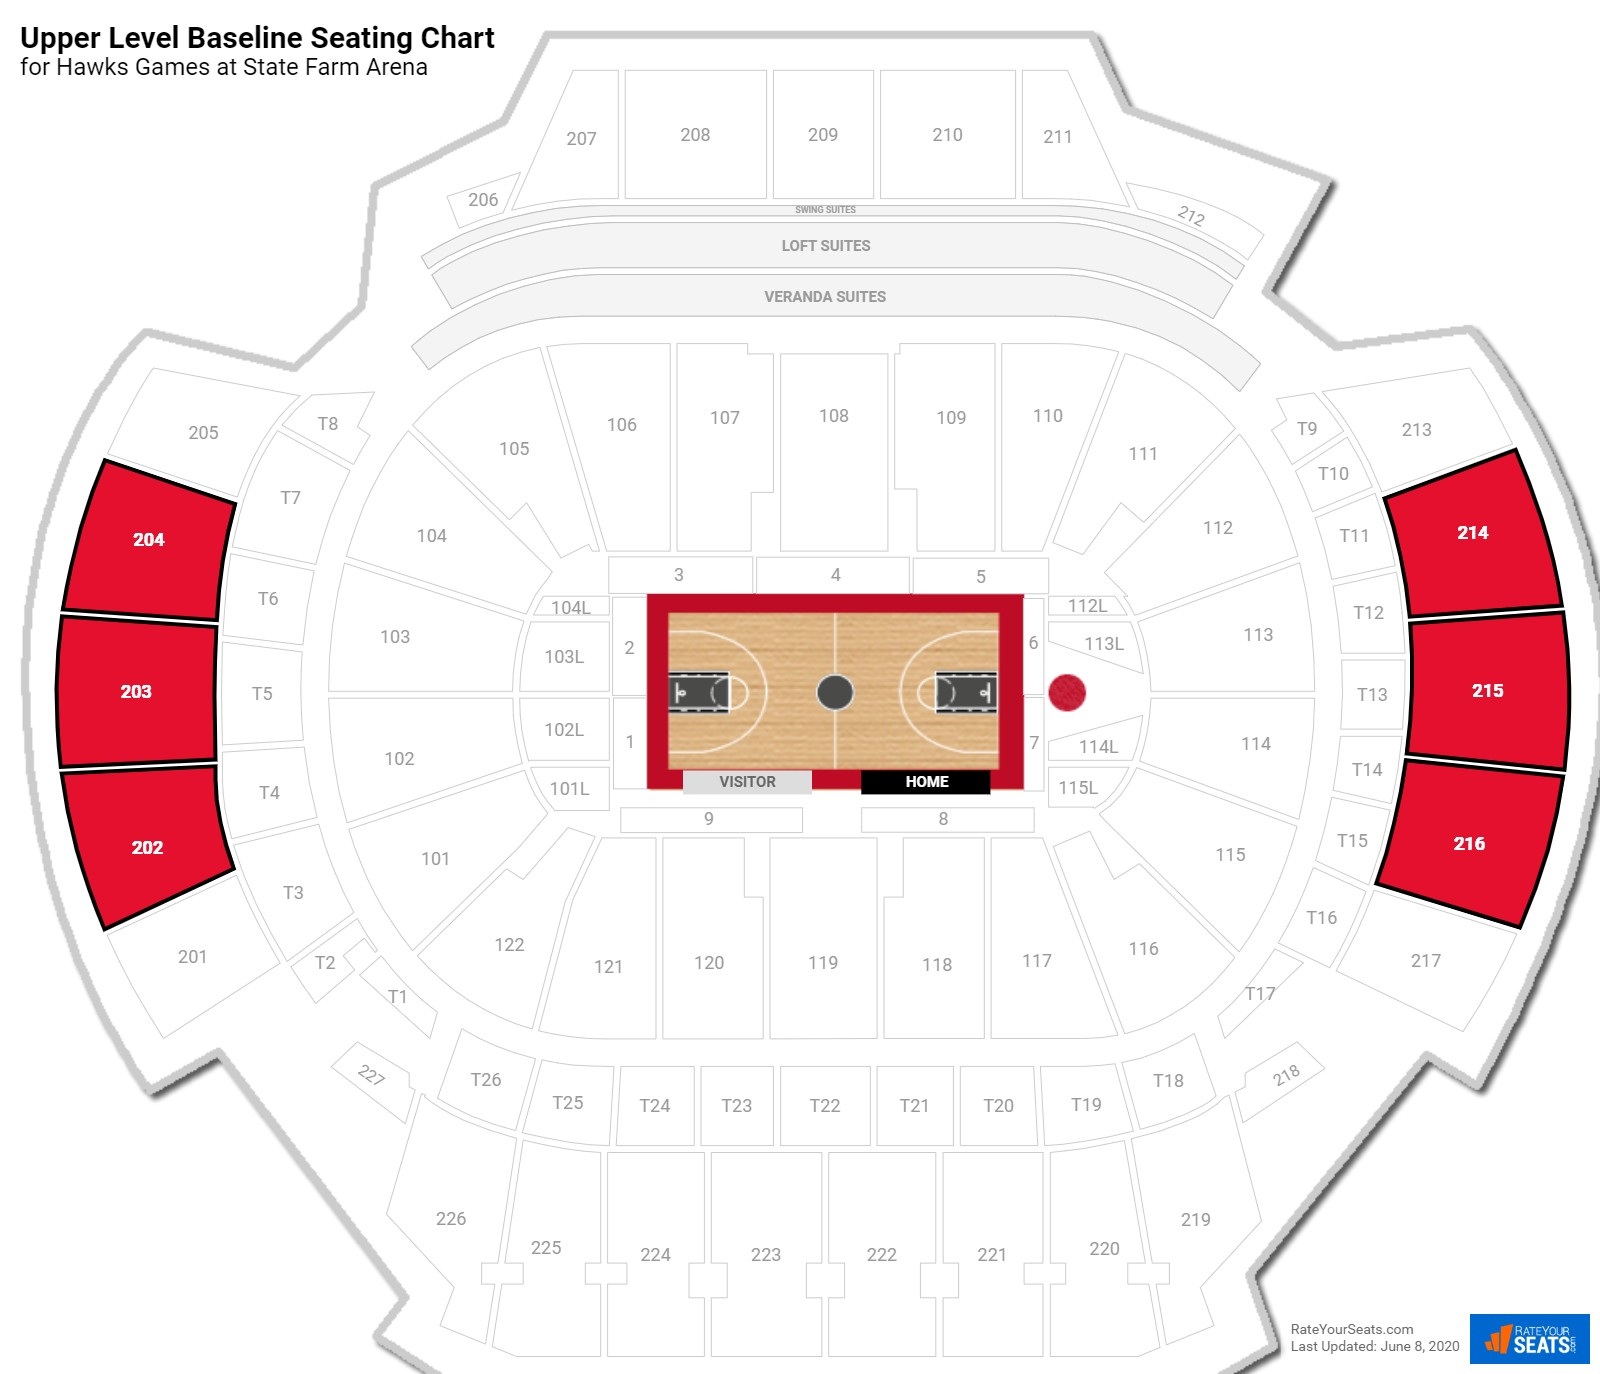 Philips Arena Upper Level Baseline seating chart